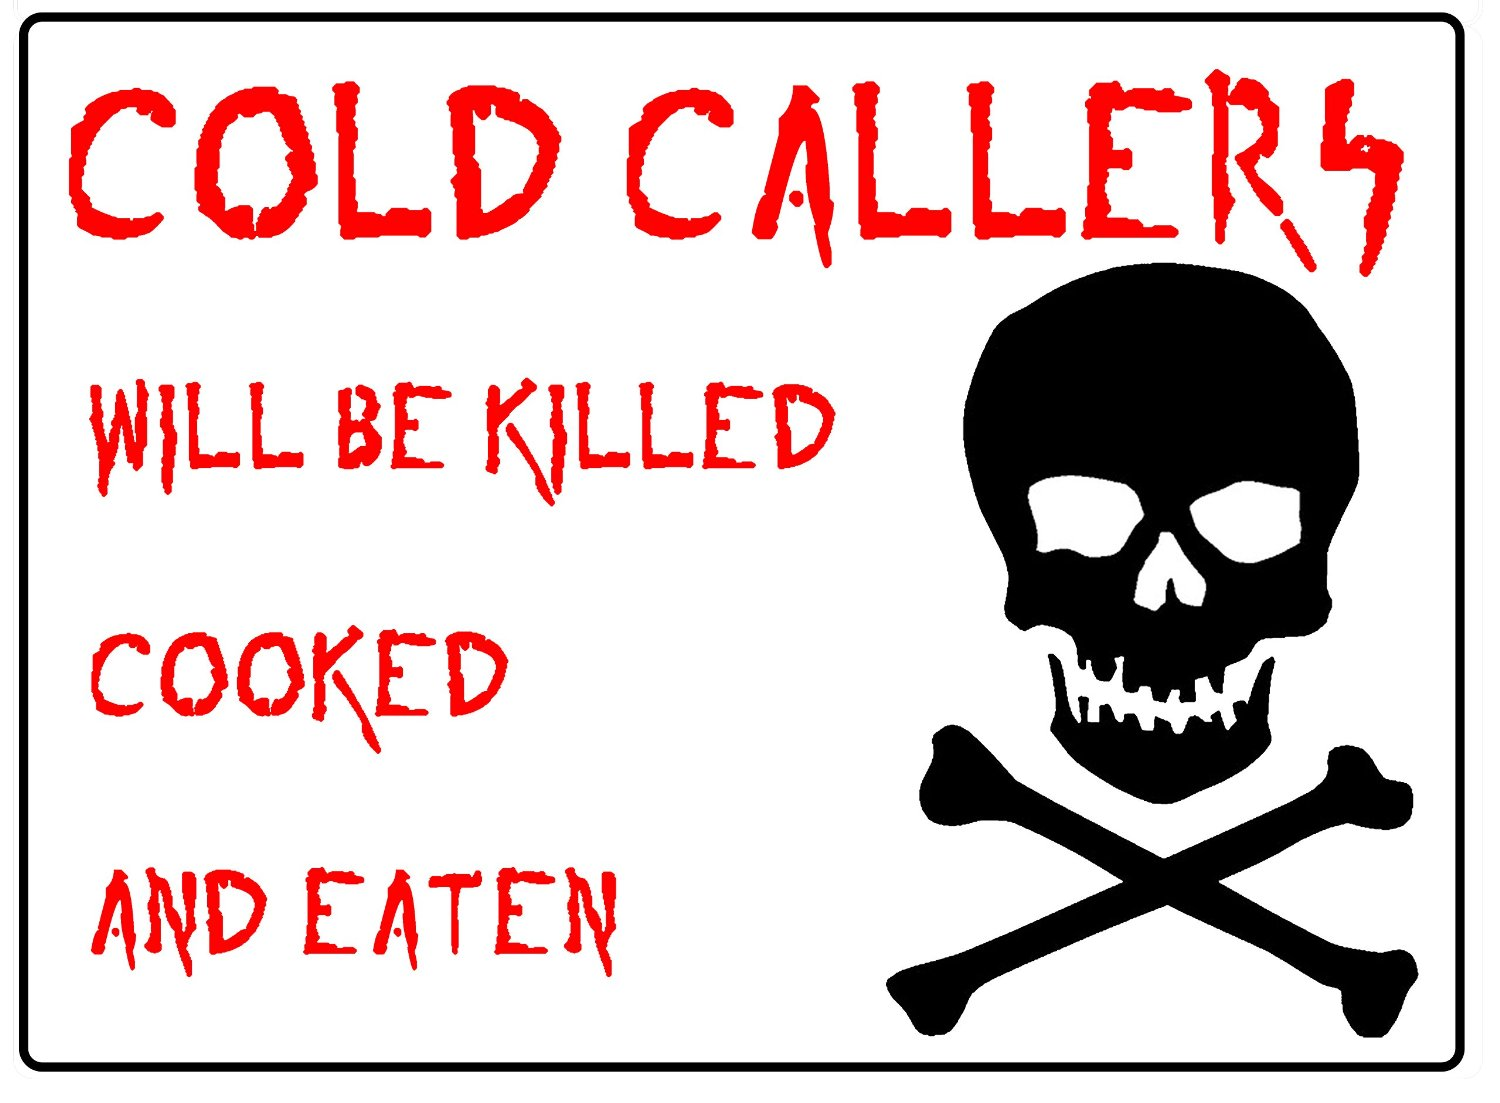 Glossy White Plastic, Self Adhesive Cold Callers Warning Sign. Door Sticker (20cm x 15cm)